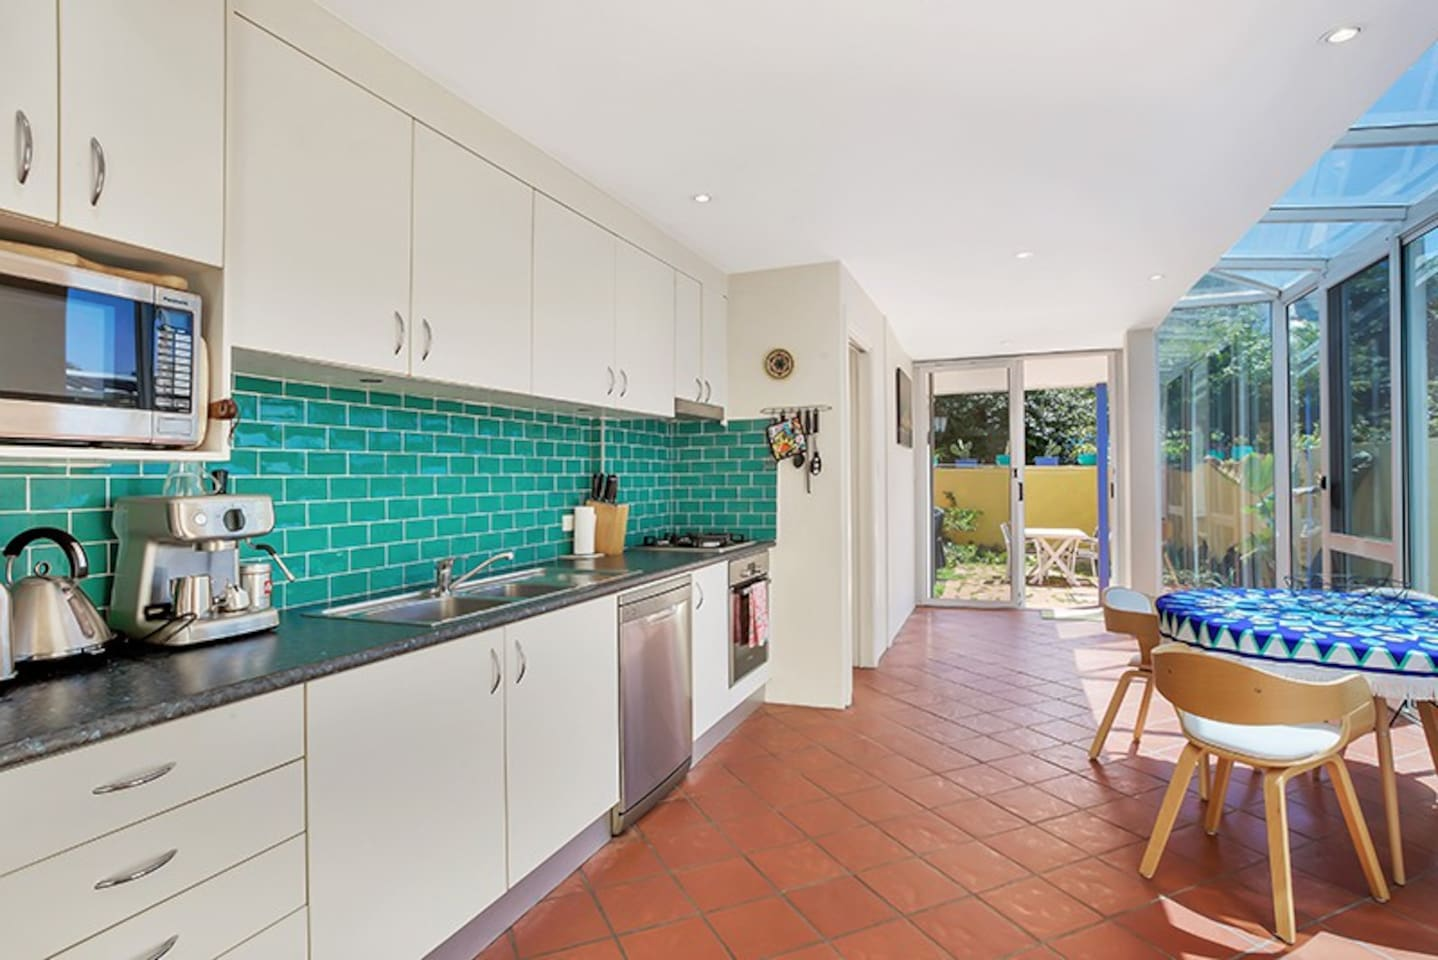 Bright kitchen opening to sunny courtyard